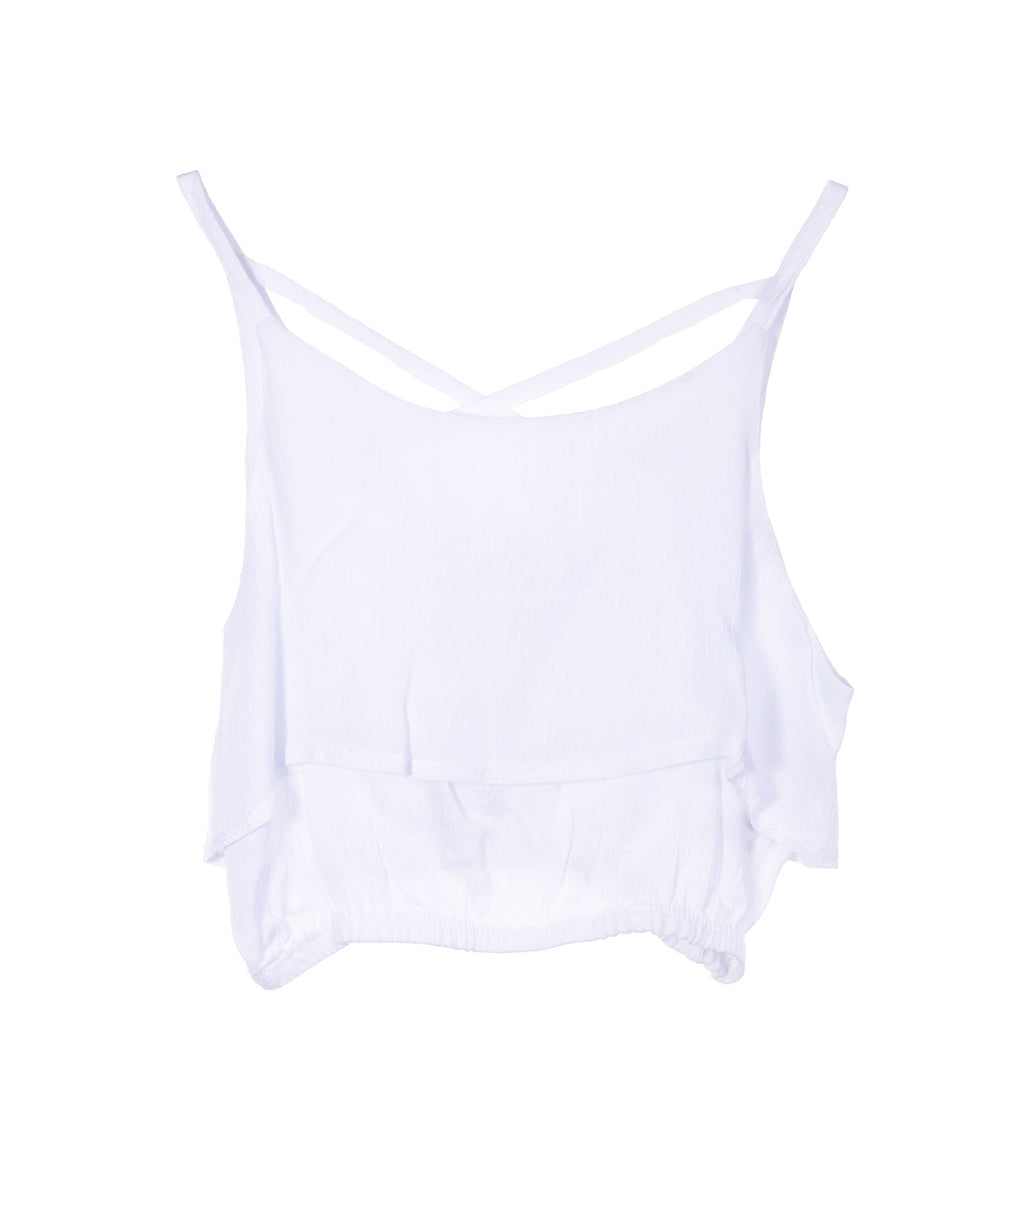 Pinc Premium Girls White Tank